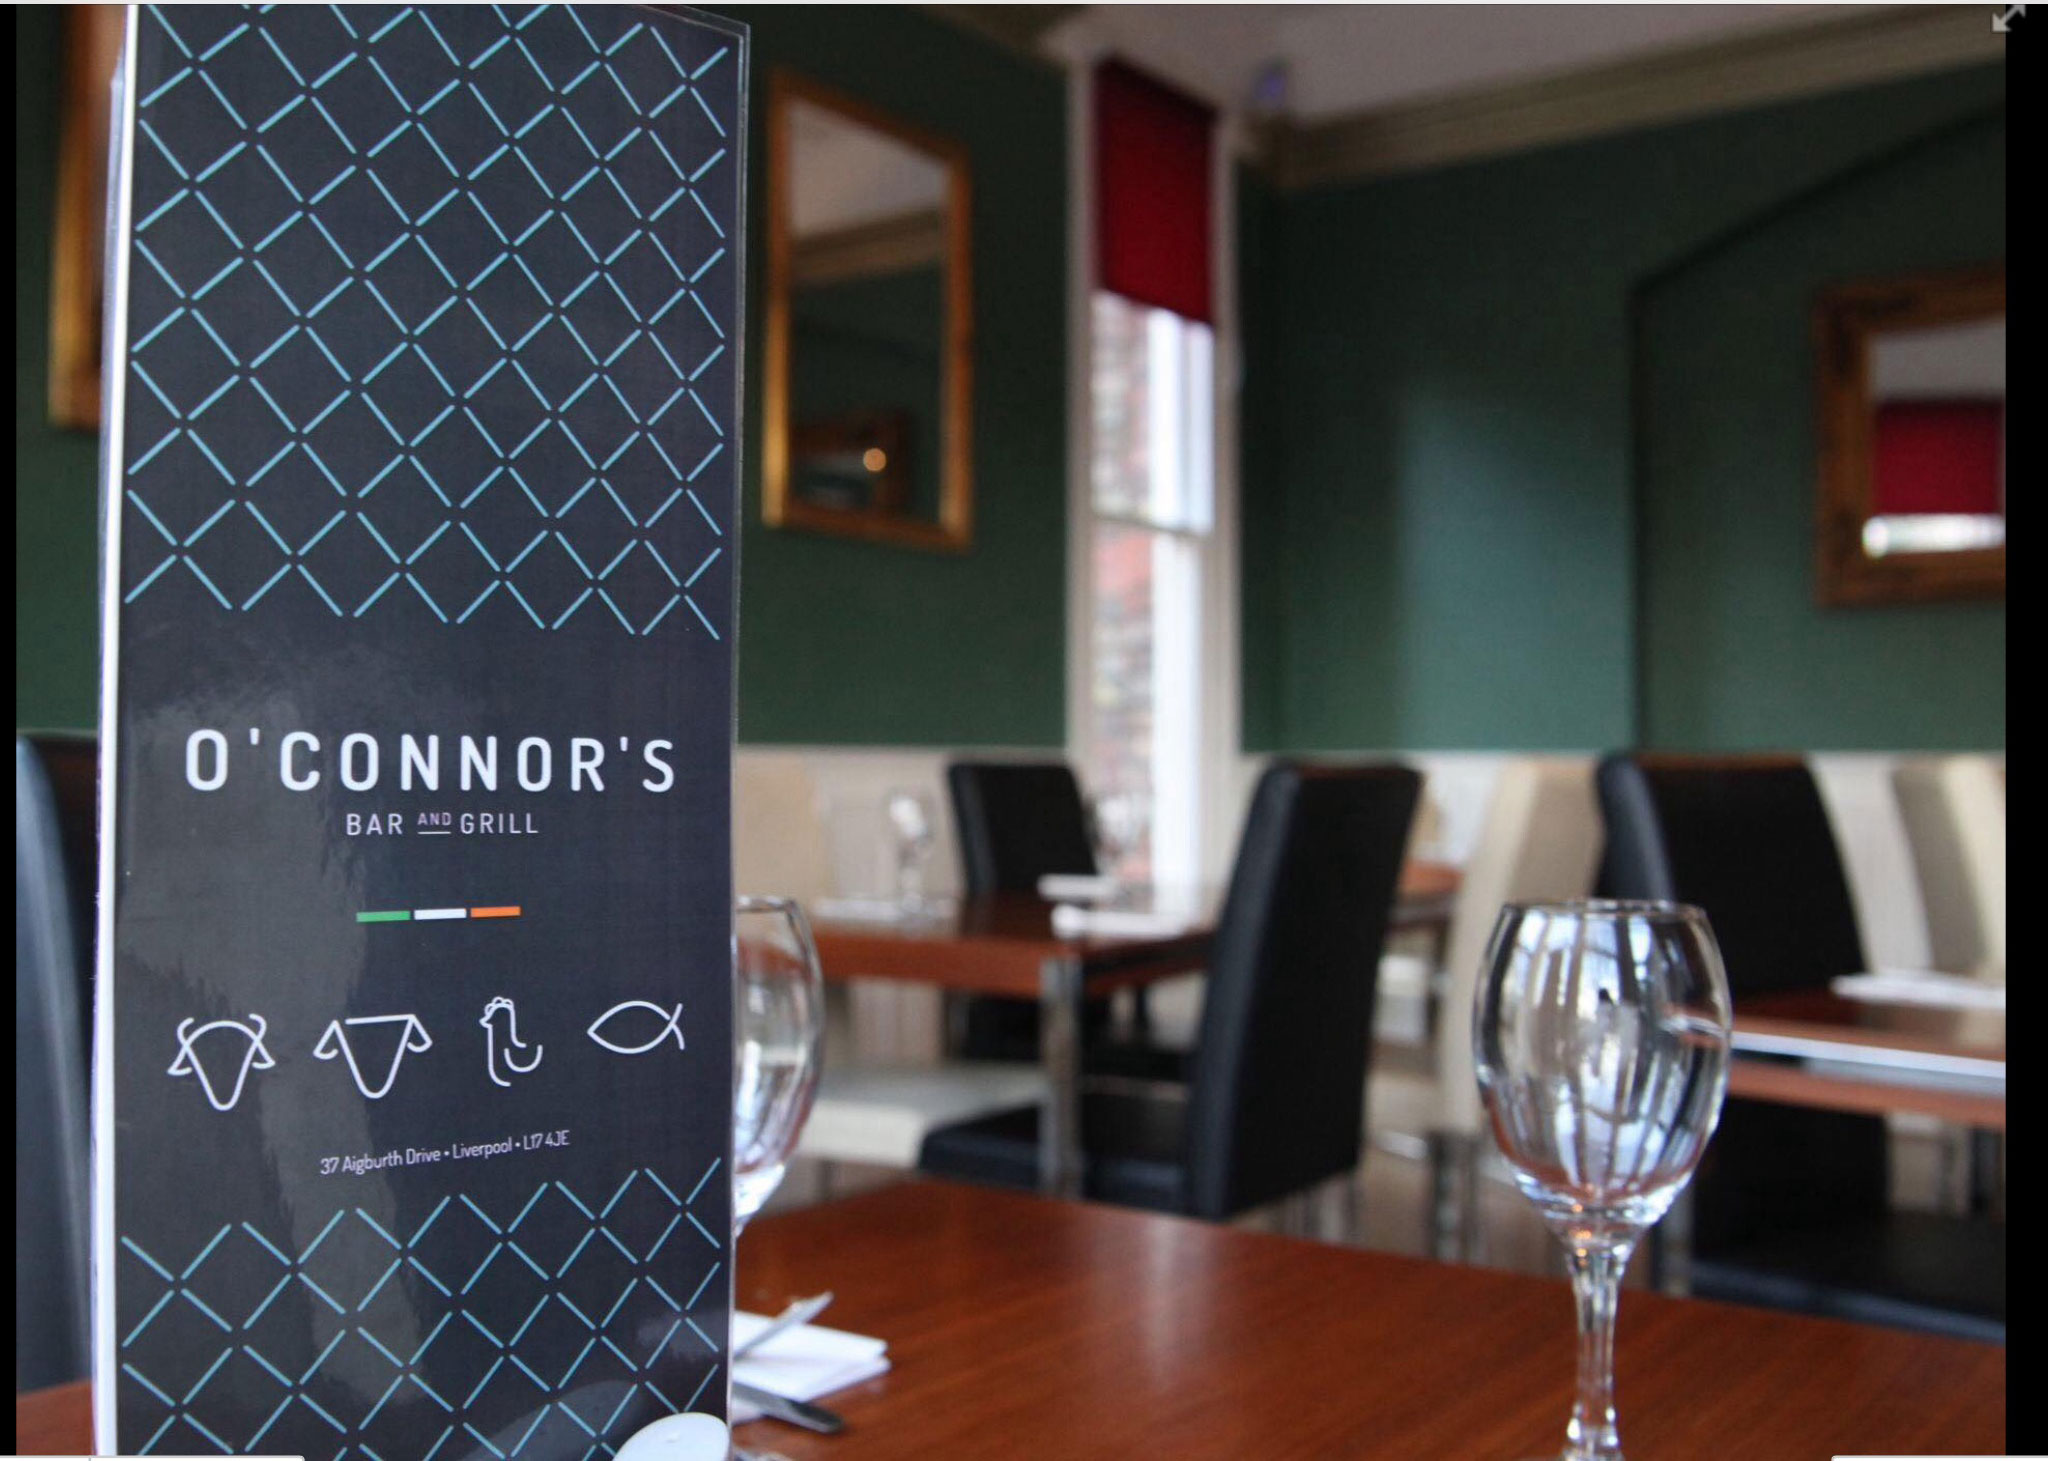 O'Connor's Bar & Grill - Liverpool